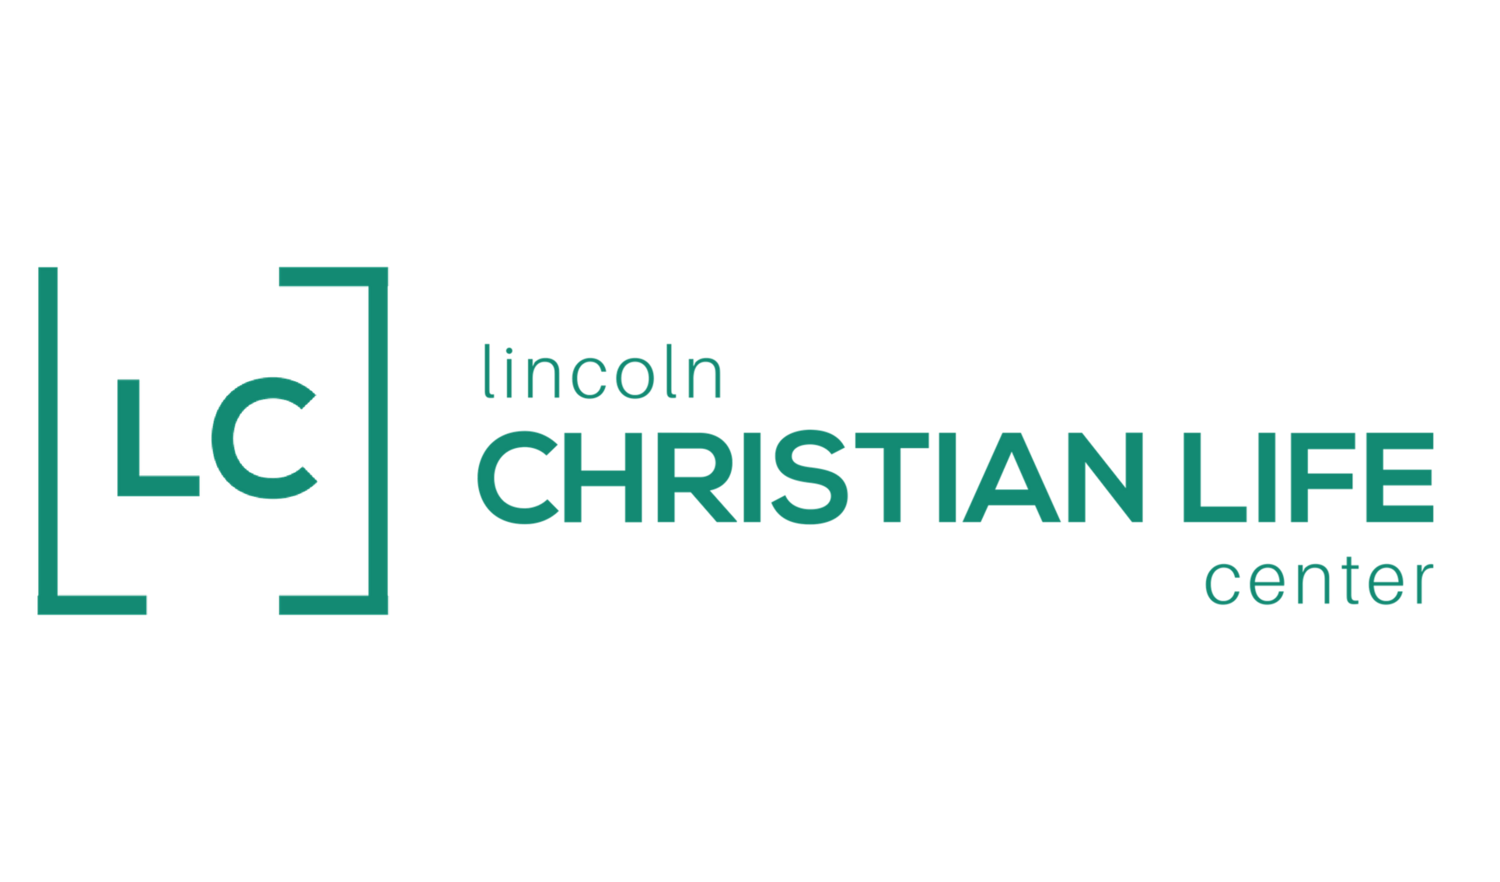 Lincoln Christian Life Center